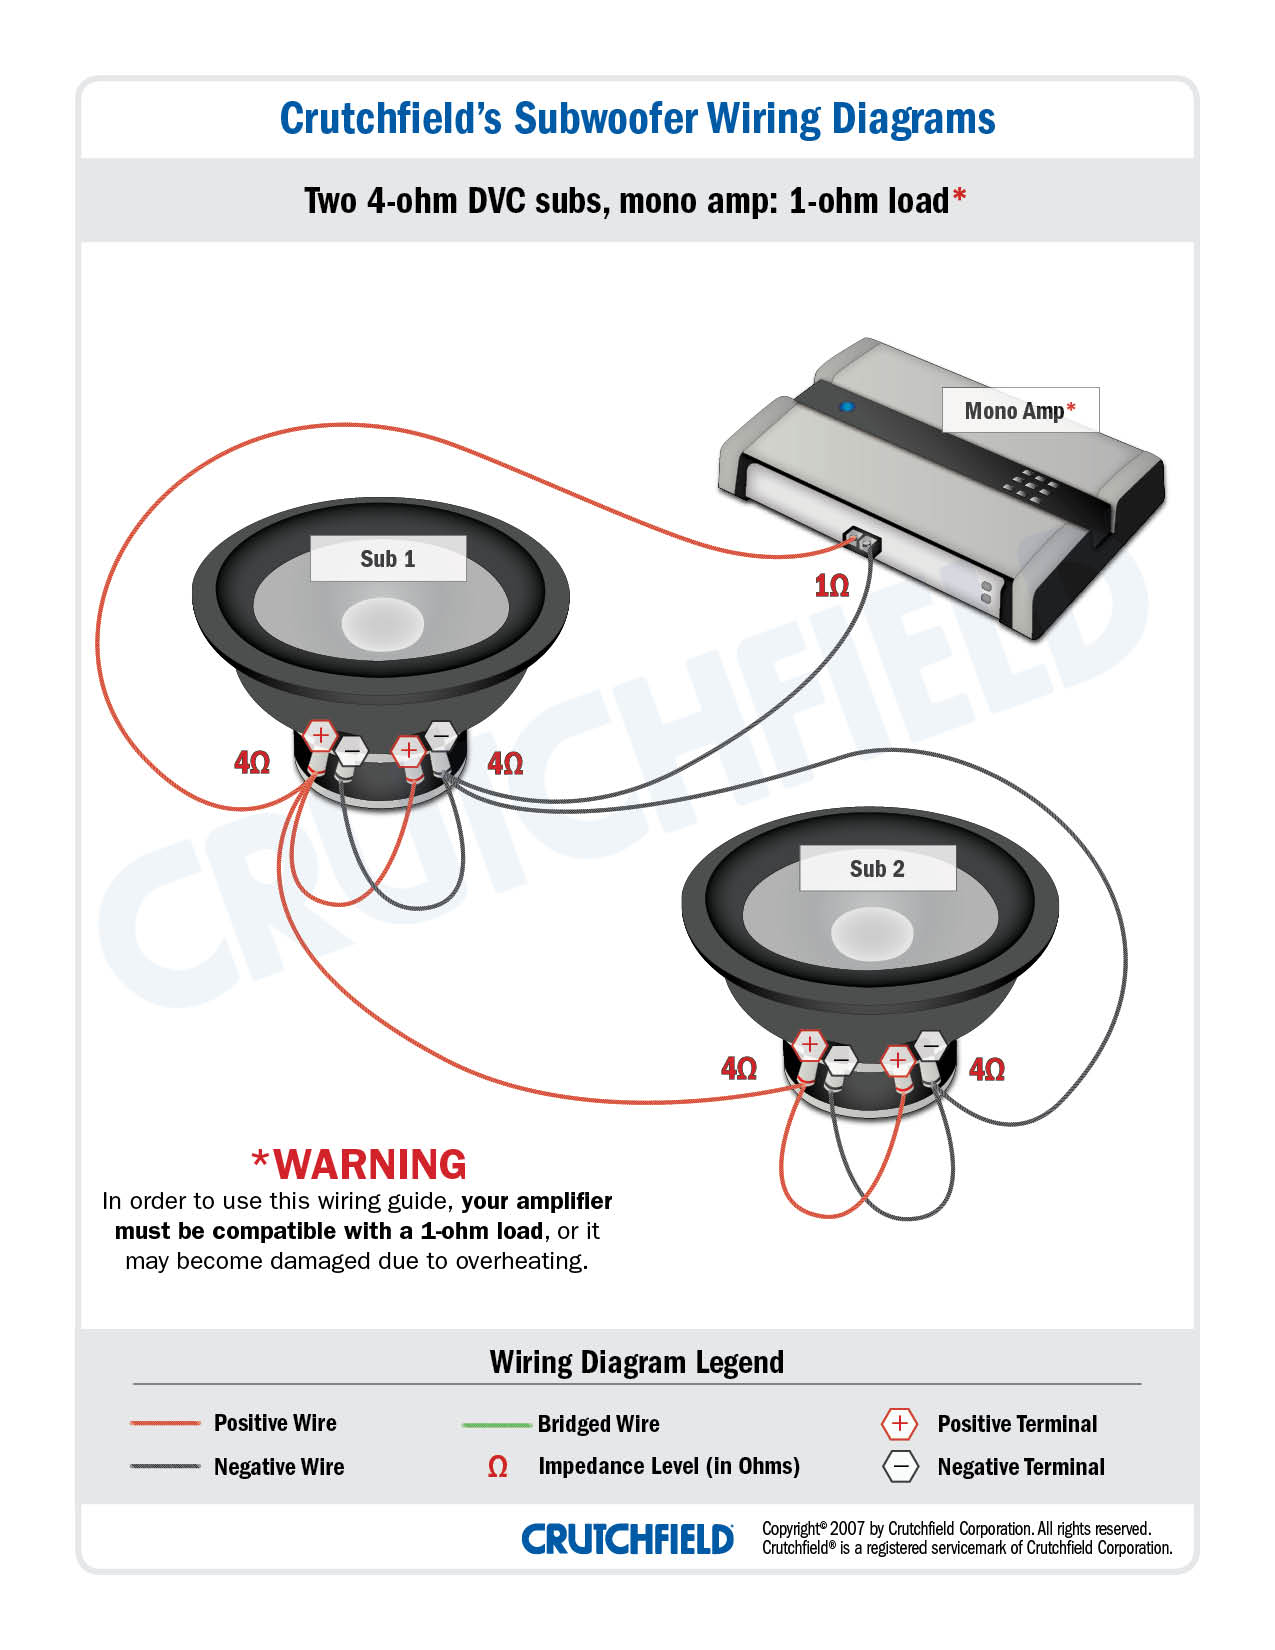 Incredible Subwoofer Wiring Diagrams How To Wire Your Subs Wiring Cloud Lukepaidewilluminateatxorg